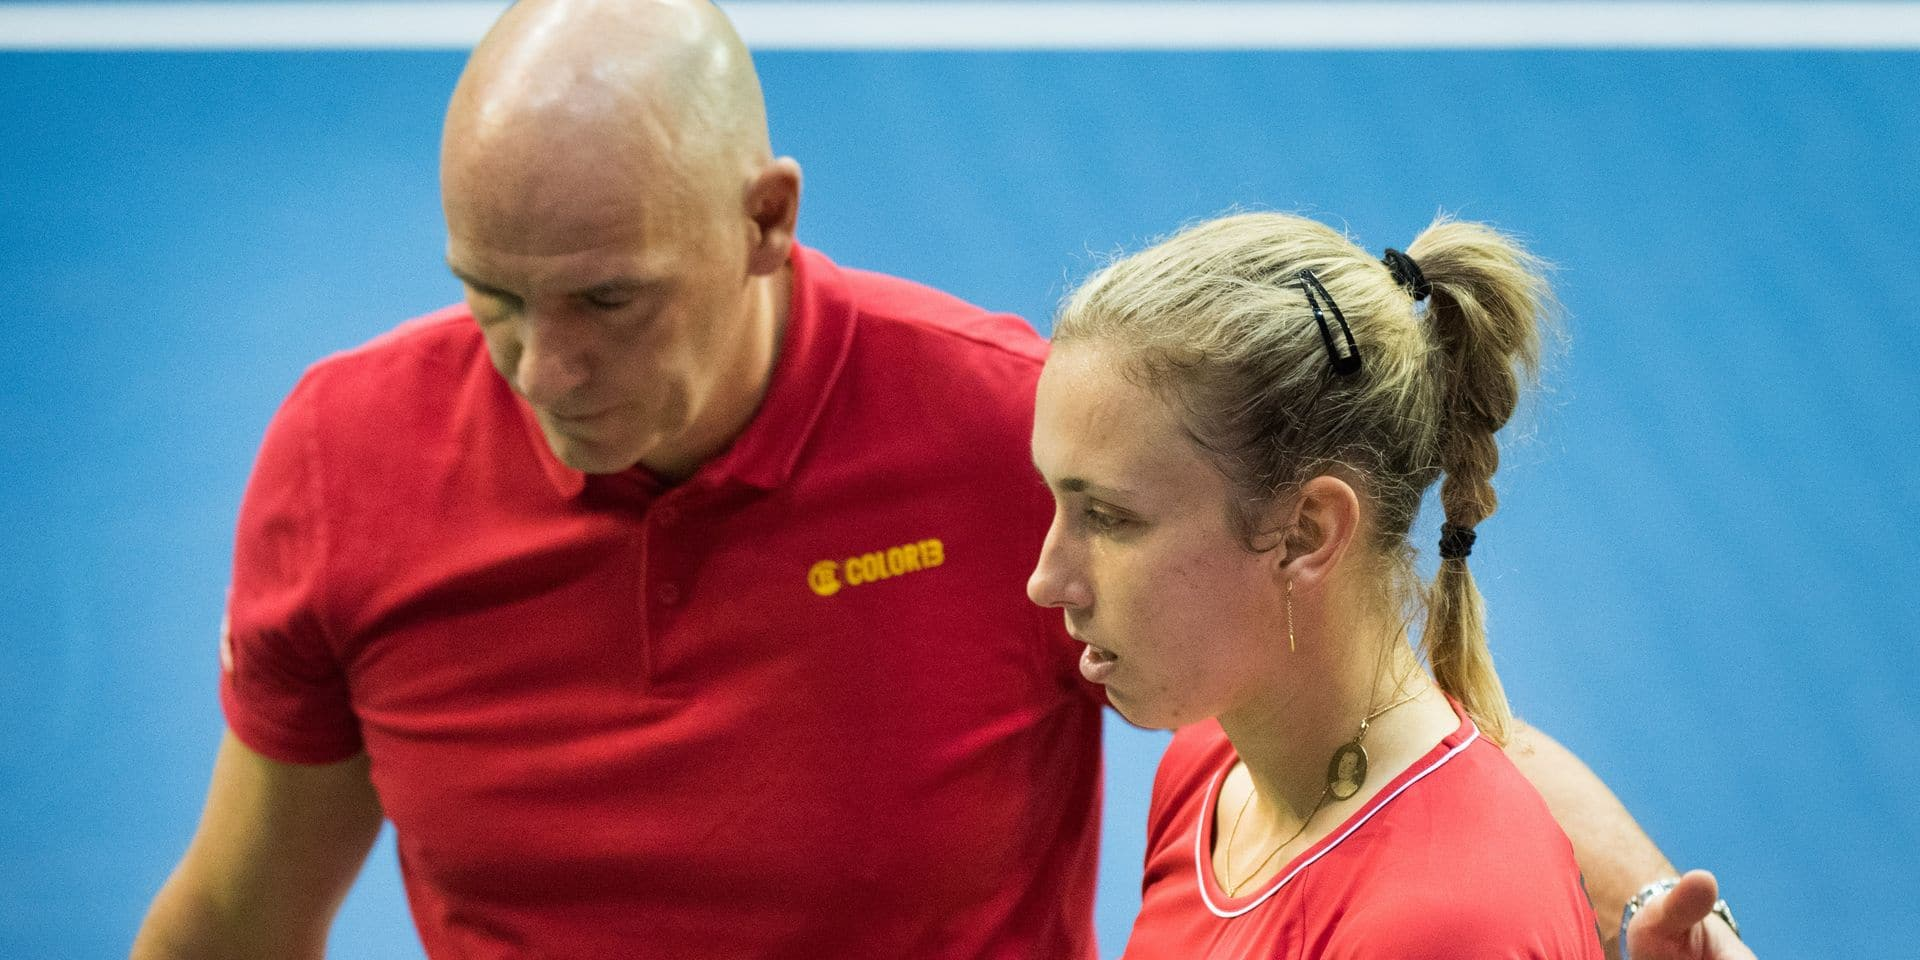 Belgian captain Johan Van Herck and Elise Mertens look dejected after a tennis match between Belgian Elise Mertens and French Caroline Garcia, the third rubber of the Fed Cup tennis meeting between Belgium and France, the quarter-finals of the World Group, Sunday 10 February 2019 in Liege. BELGA PHOTO BENOIT DOPPAGNE